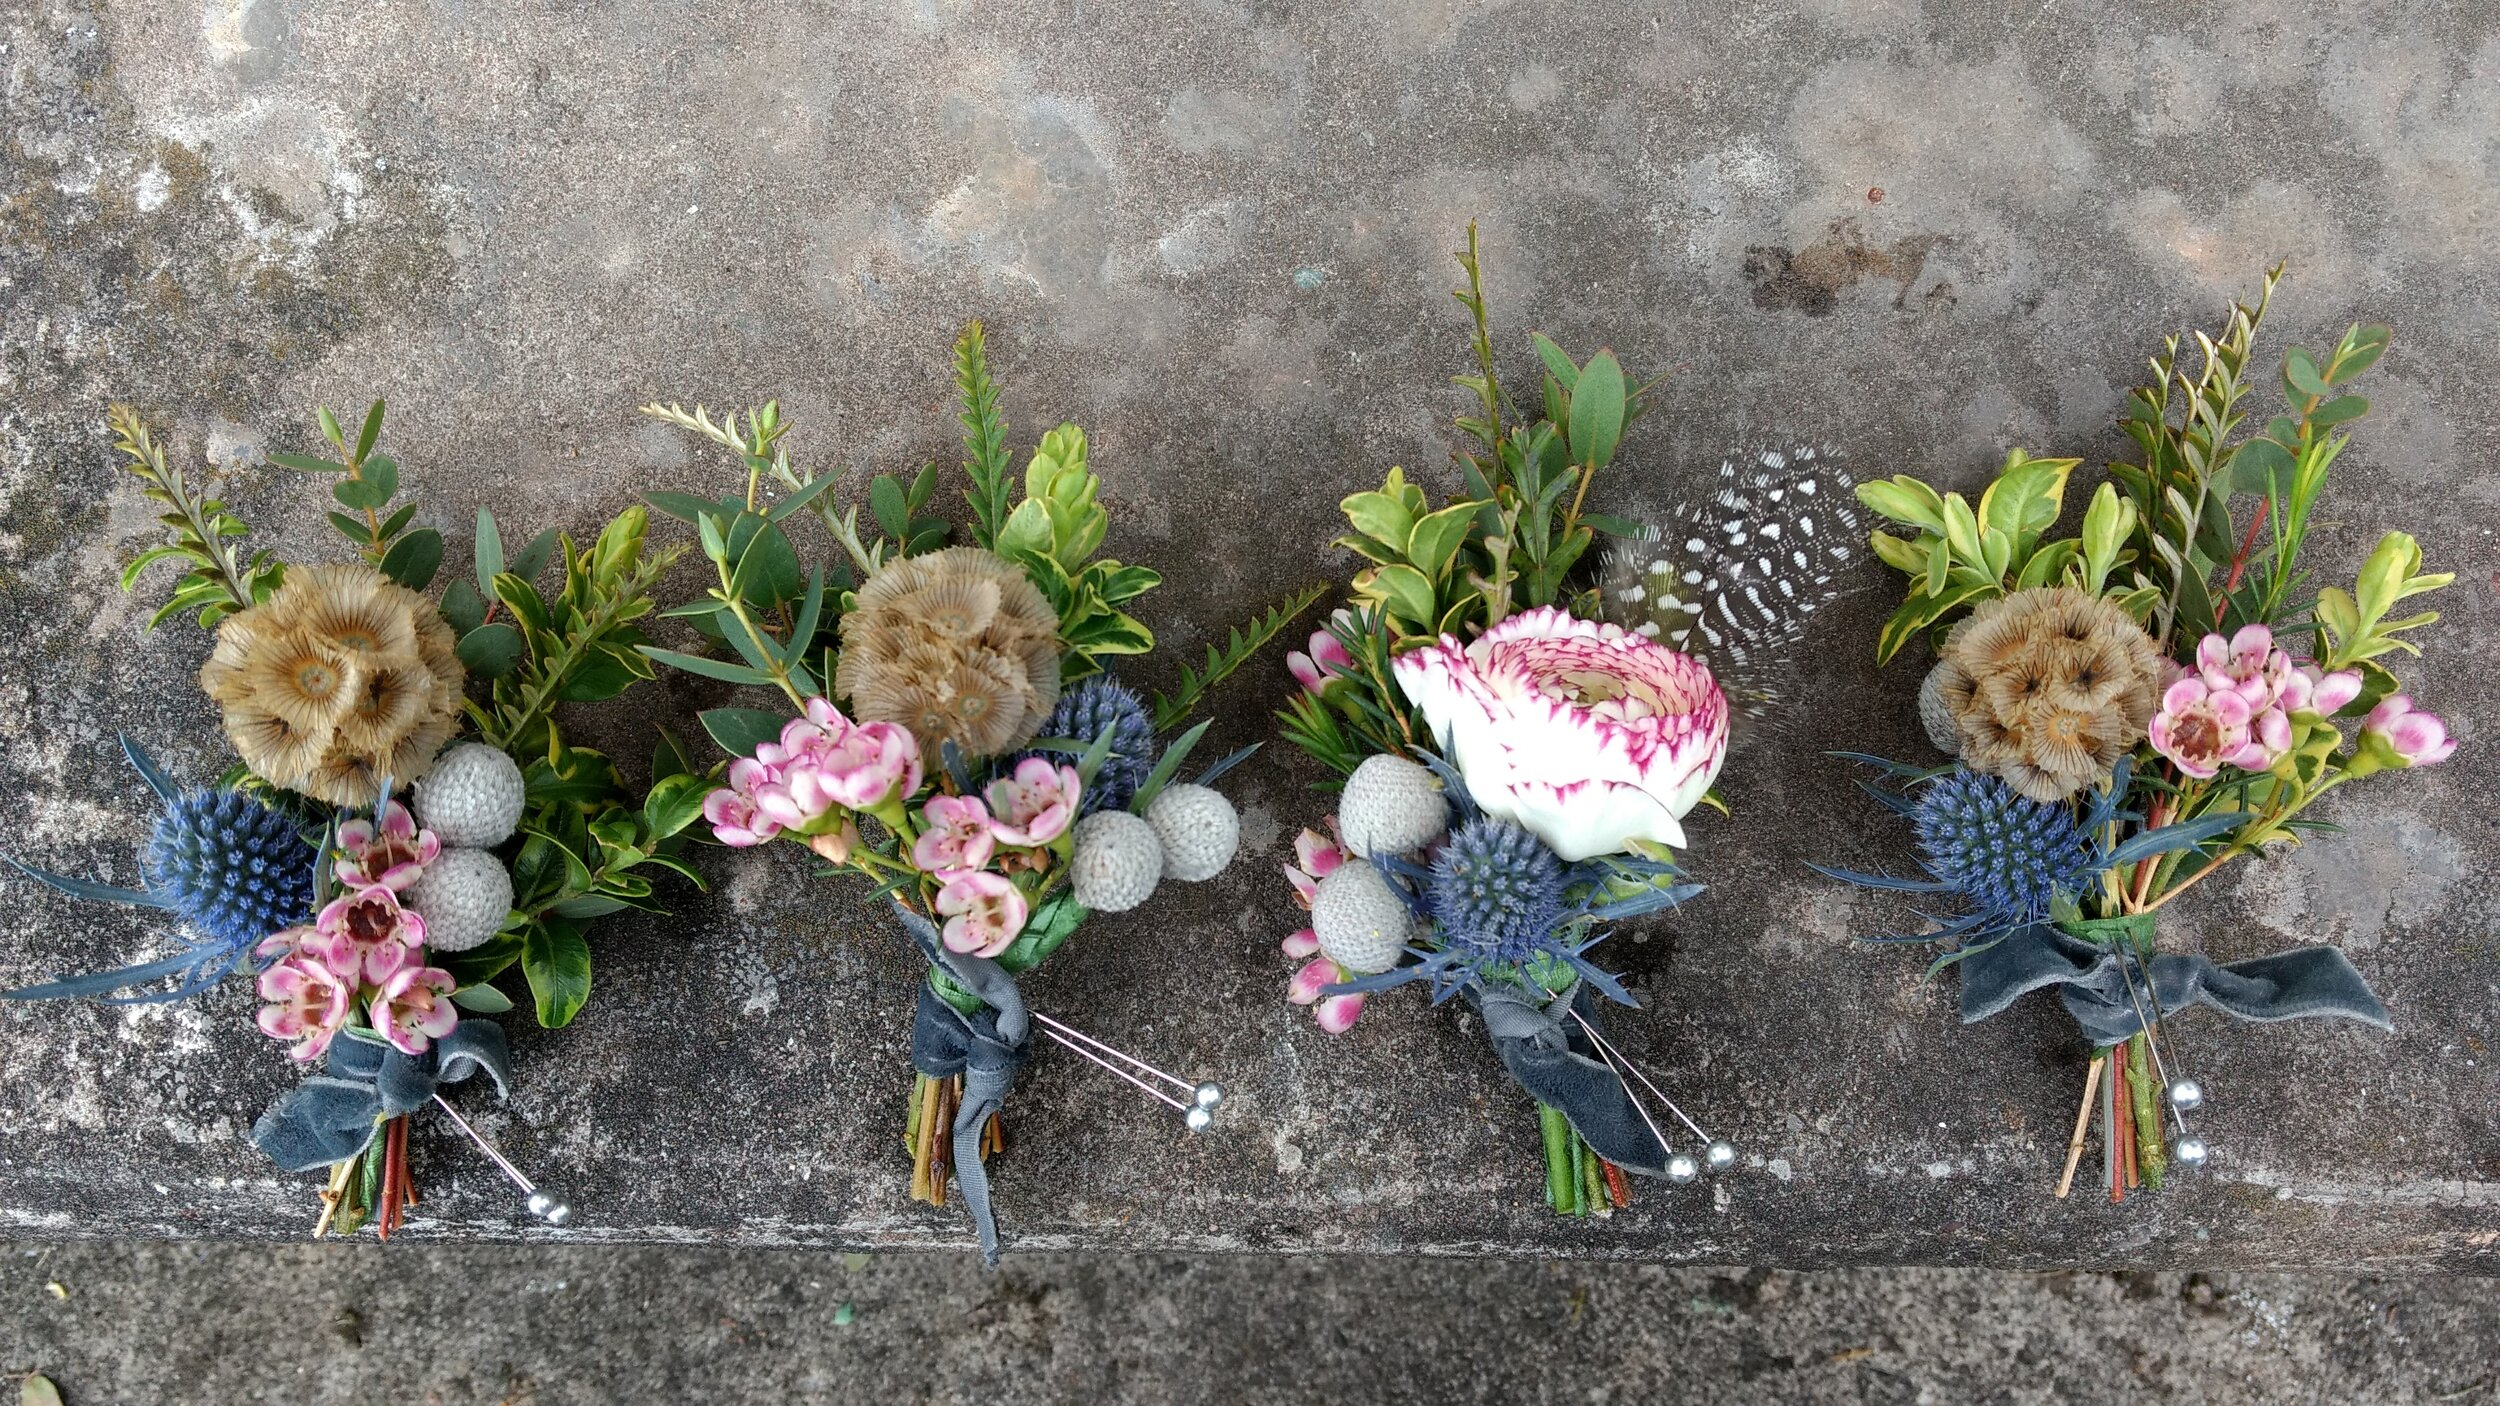 A Guide To Dark And Moody Spring Wedding Flowers Sustainable Wild Flower Wedding And Funeral Flowers By Briar Rose Design